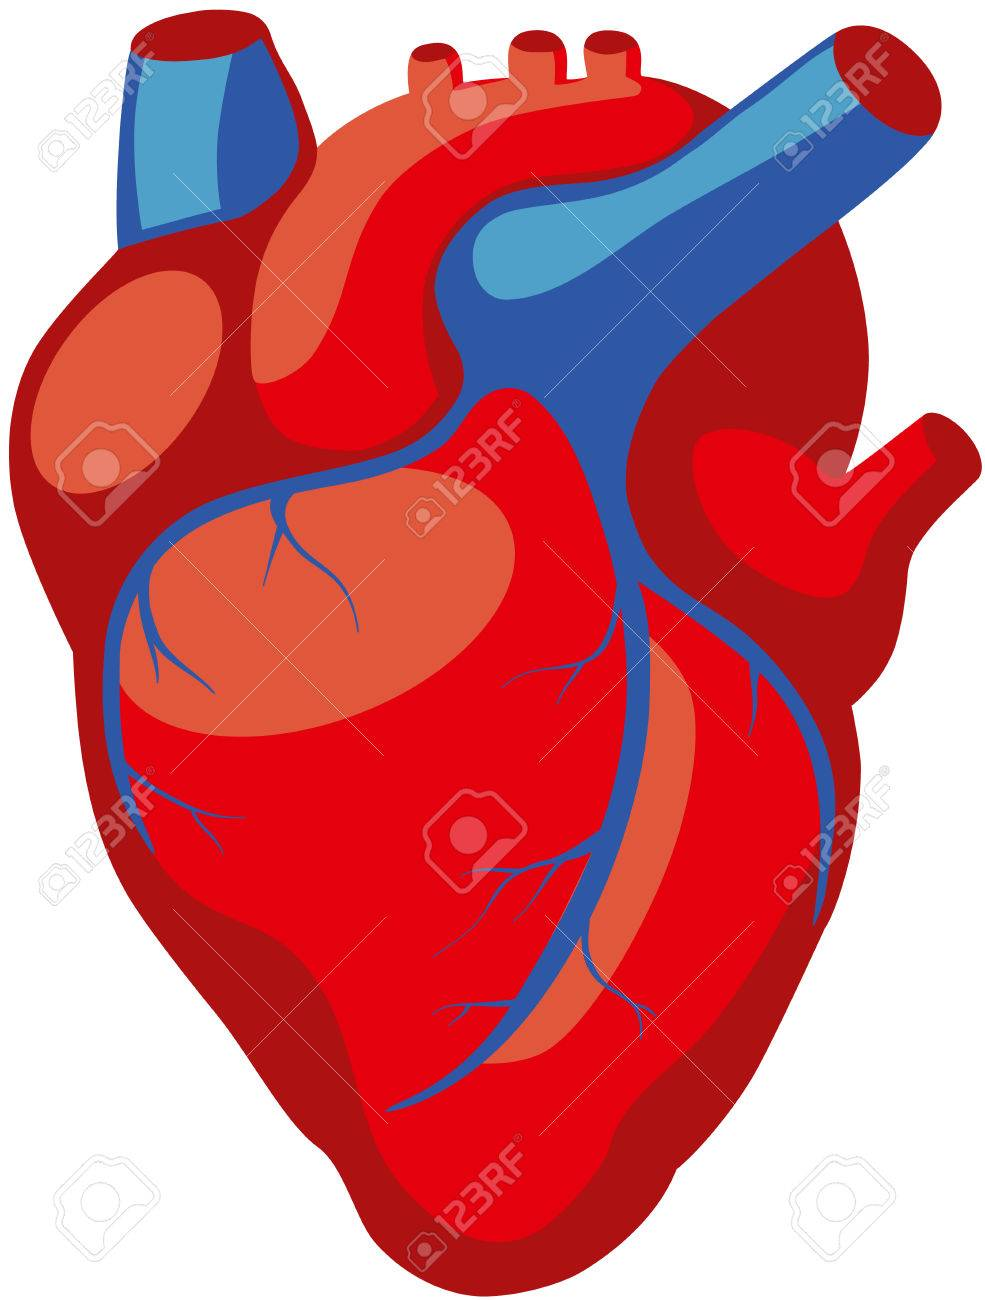 anatomy of the human heart in red color with blue veins royalty free rh 123rf com human heart vector outline human heart vector illustration